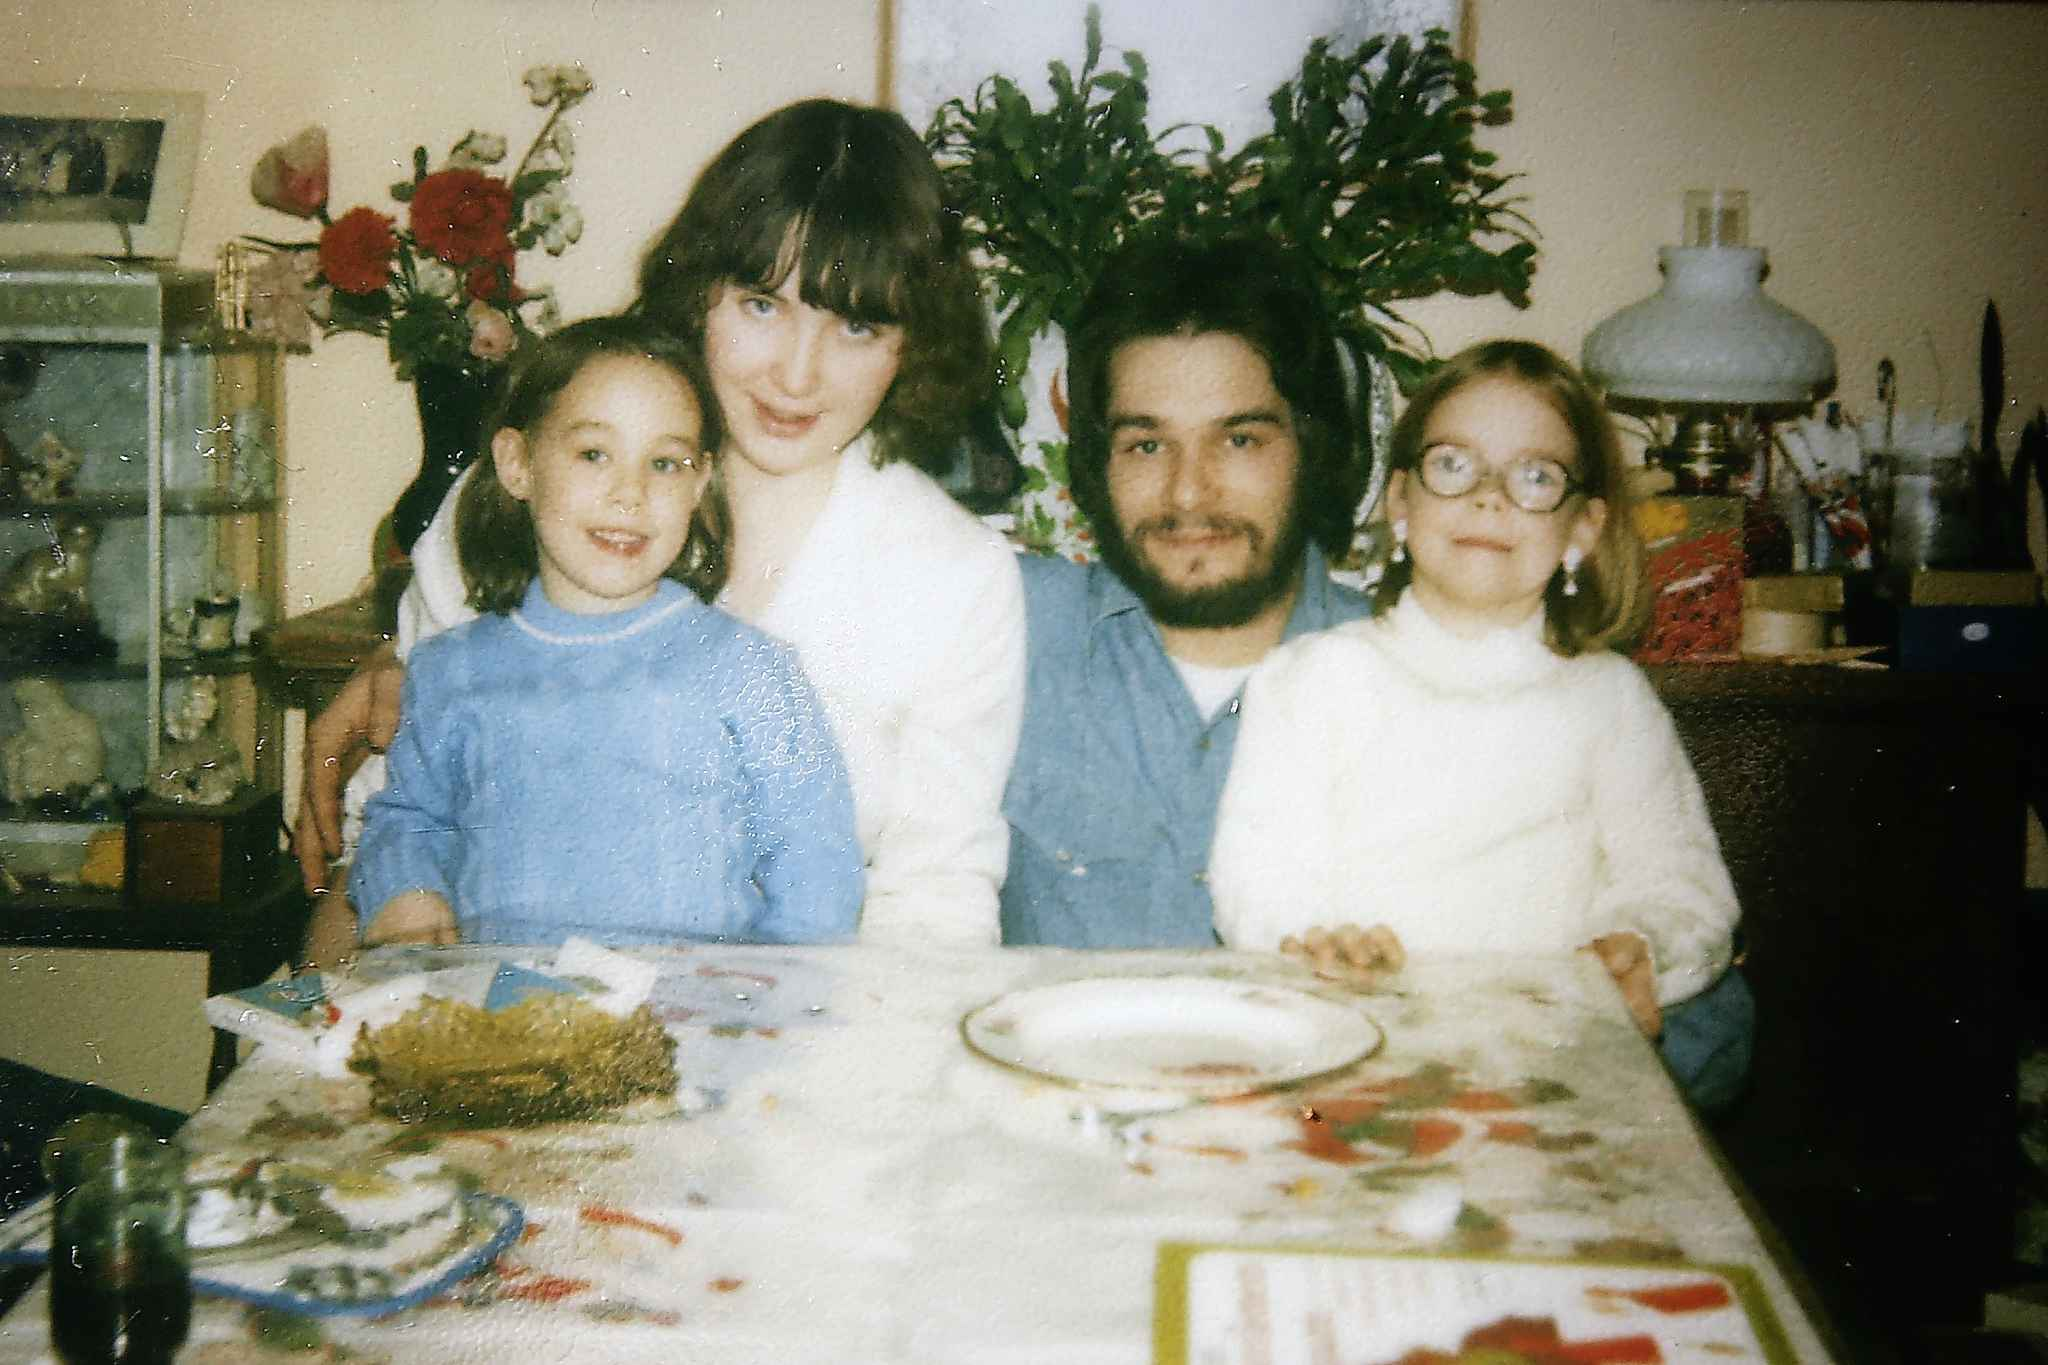 Denise (from left), Jackaleen, Craig and Jody Dyck in a photo from around 1980, the same year Jackaleen was murdered.  Two years after the killing, Jody died in an accident. (John Woods / The Canadian Press)